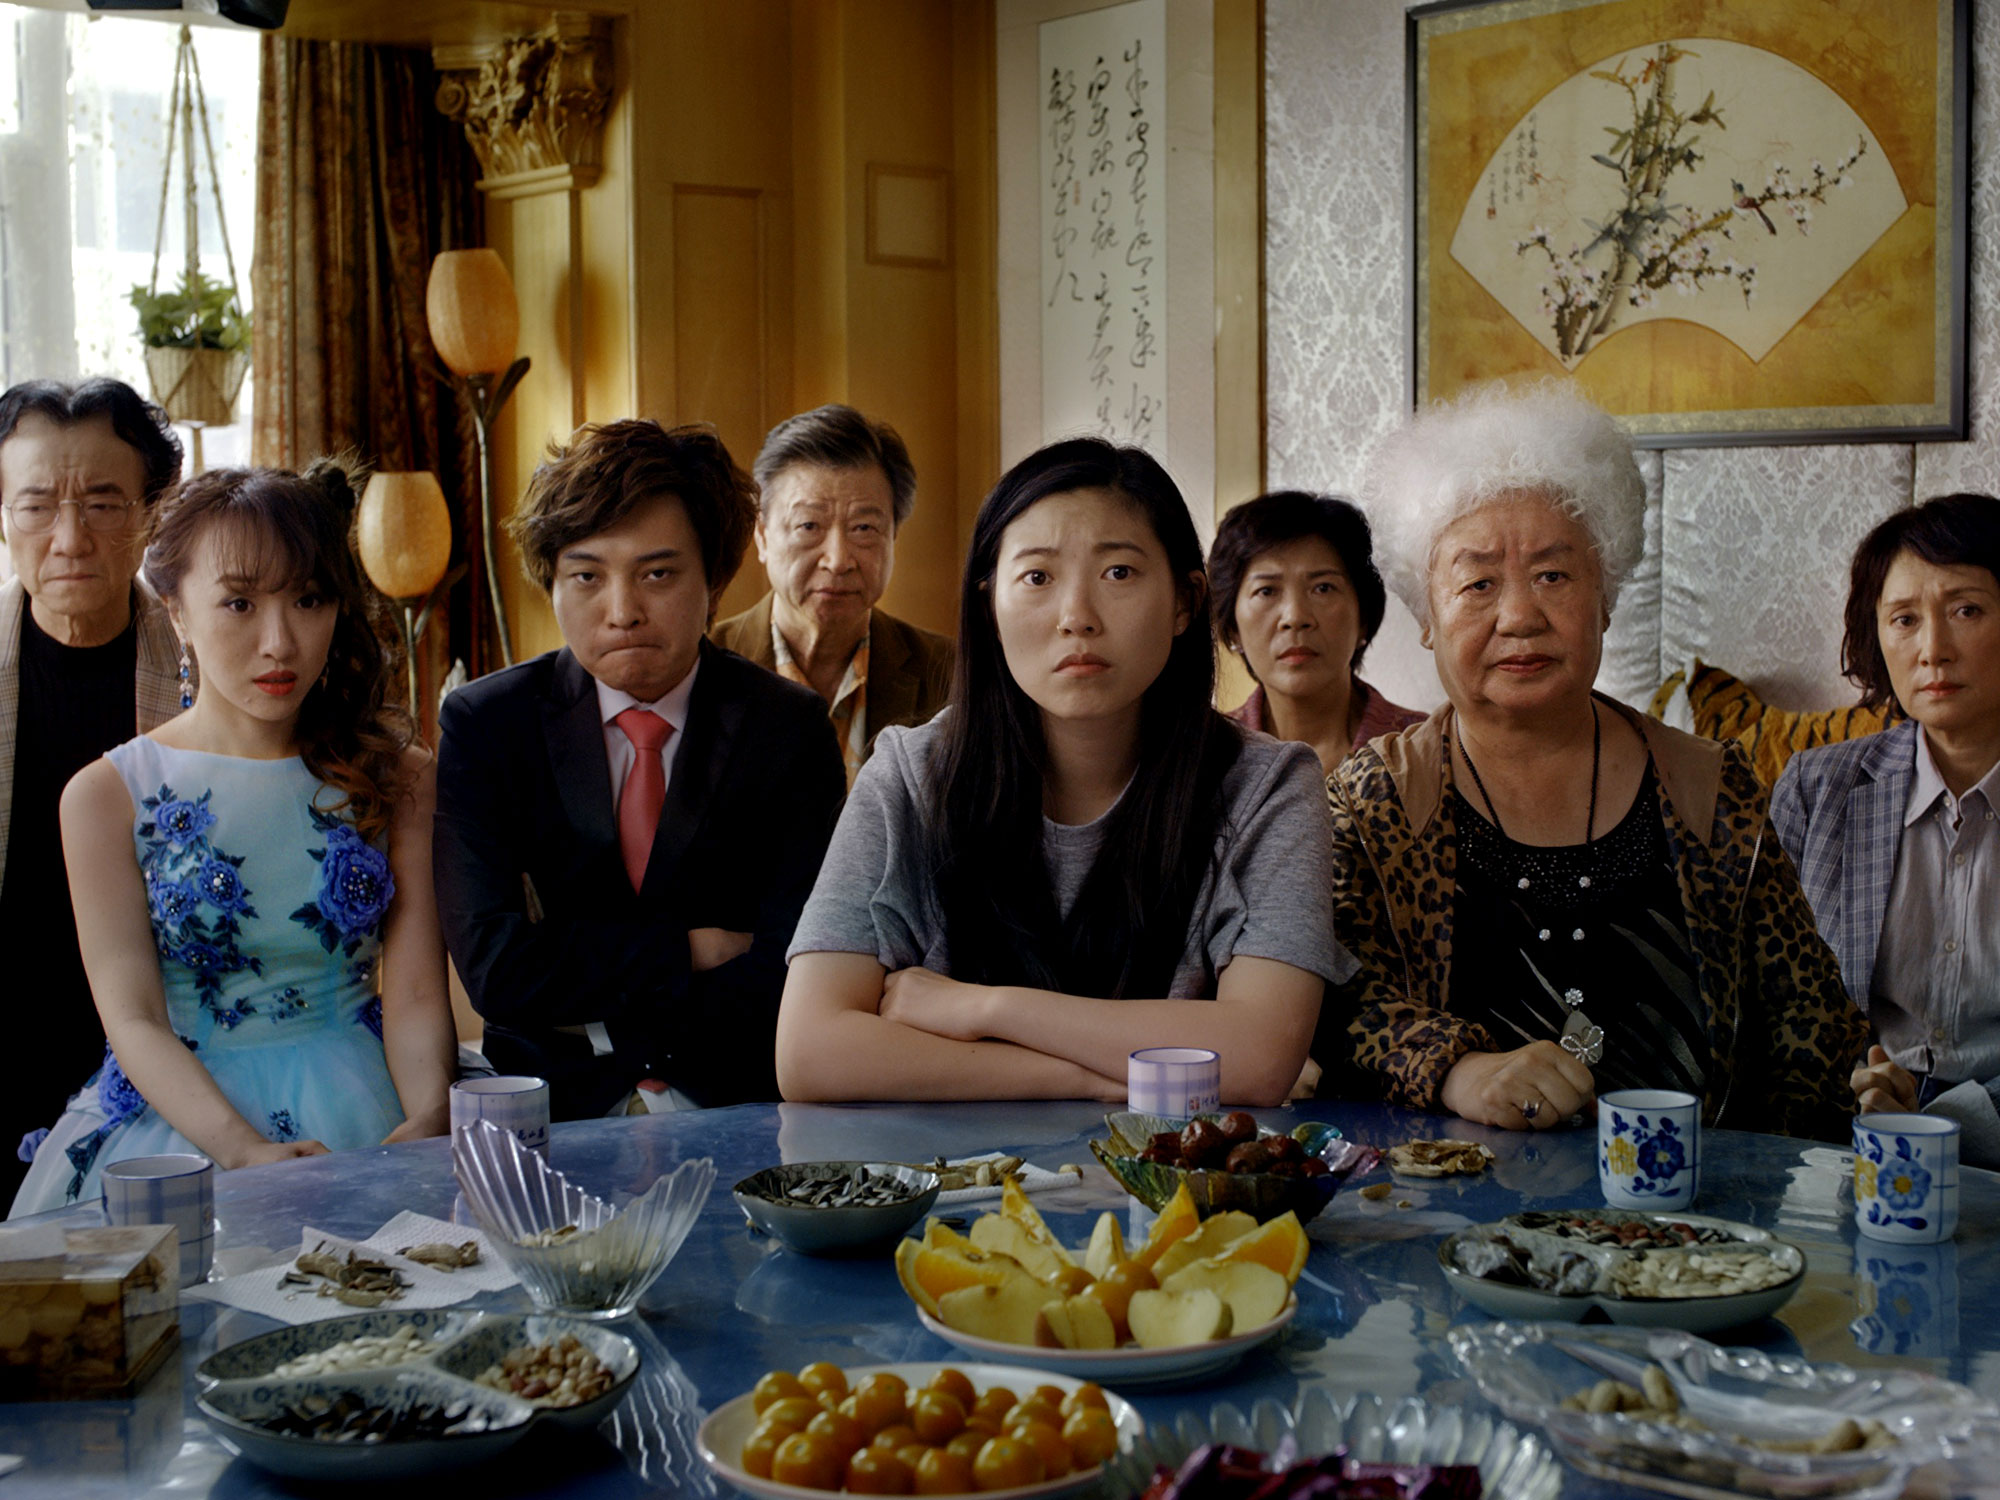 Will Lulu Wang's The Farewell fare well in the Chinese market?